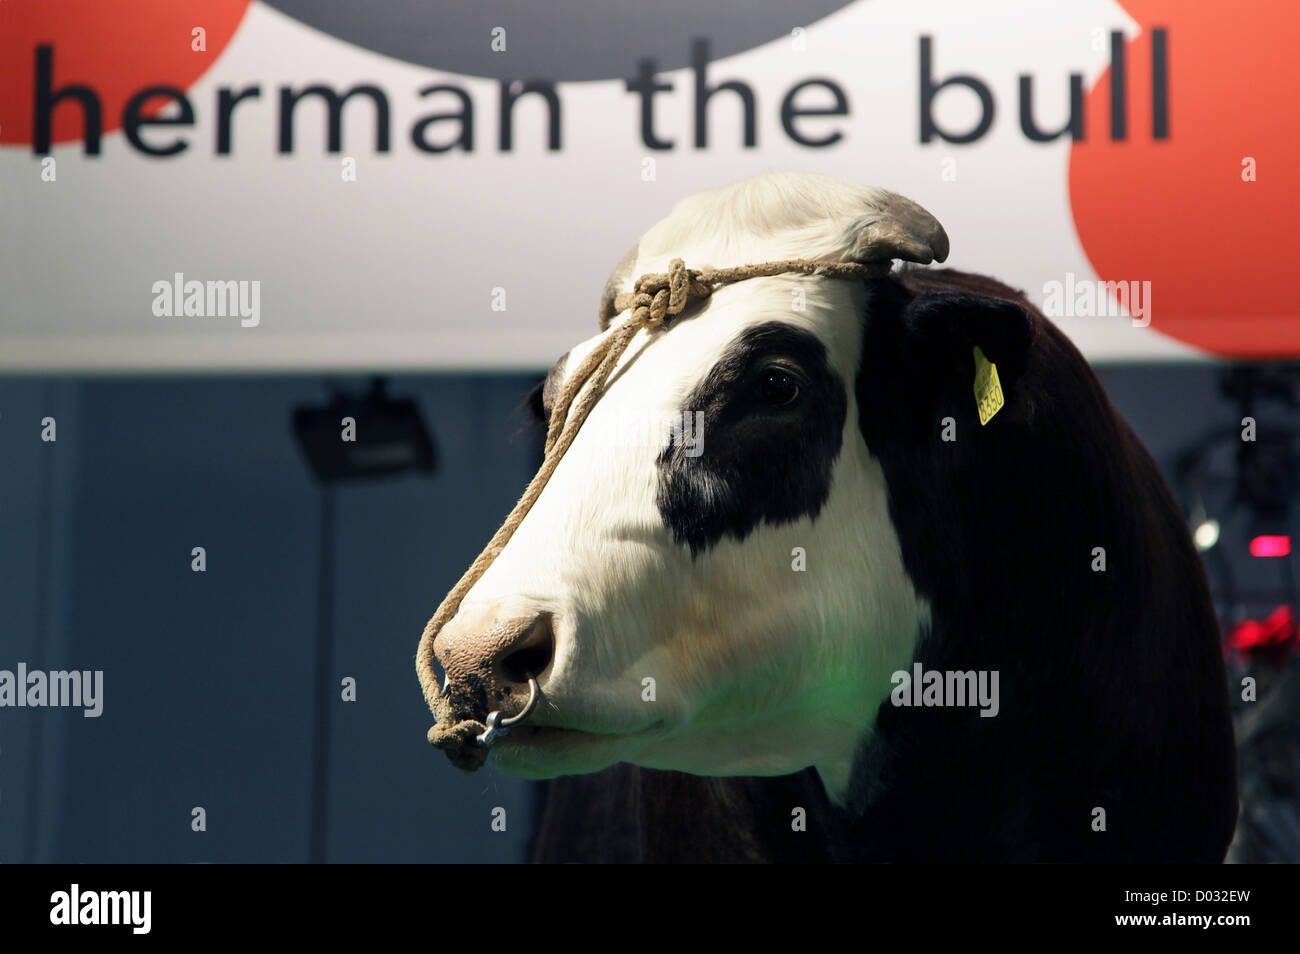 Herman the Bull (1990 – 2004) the first genetically modified or transgenic bovine in the world. - Stock Image